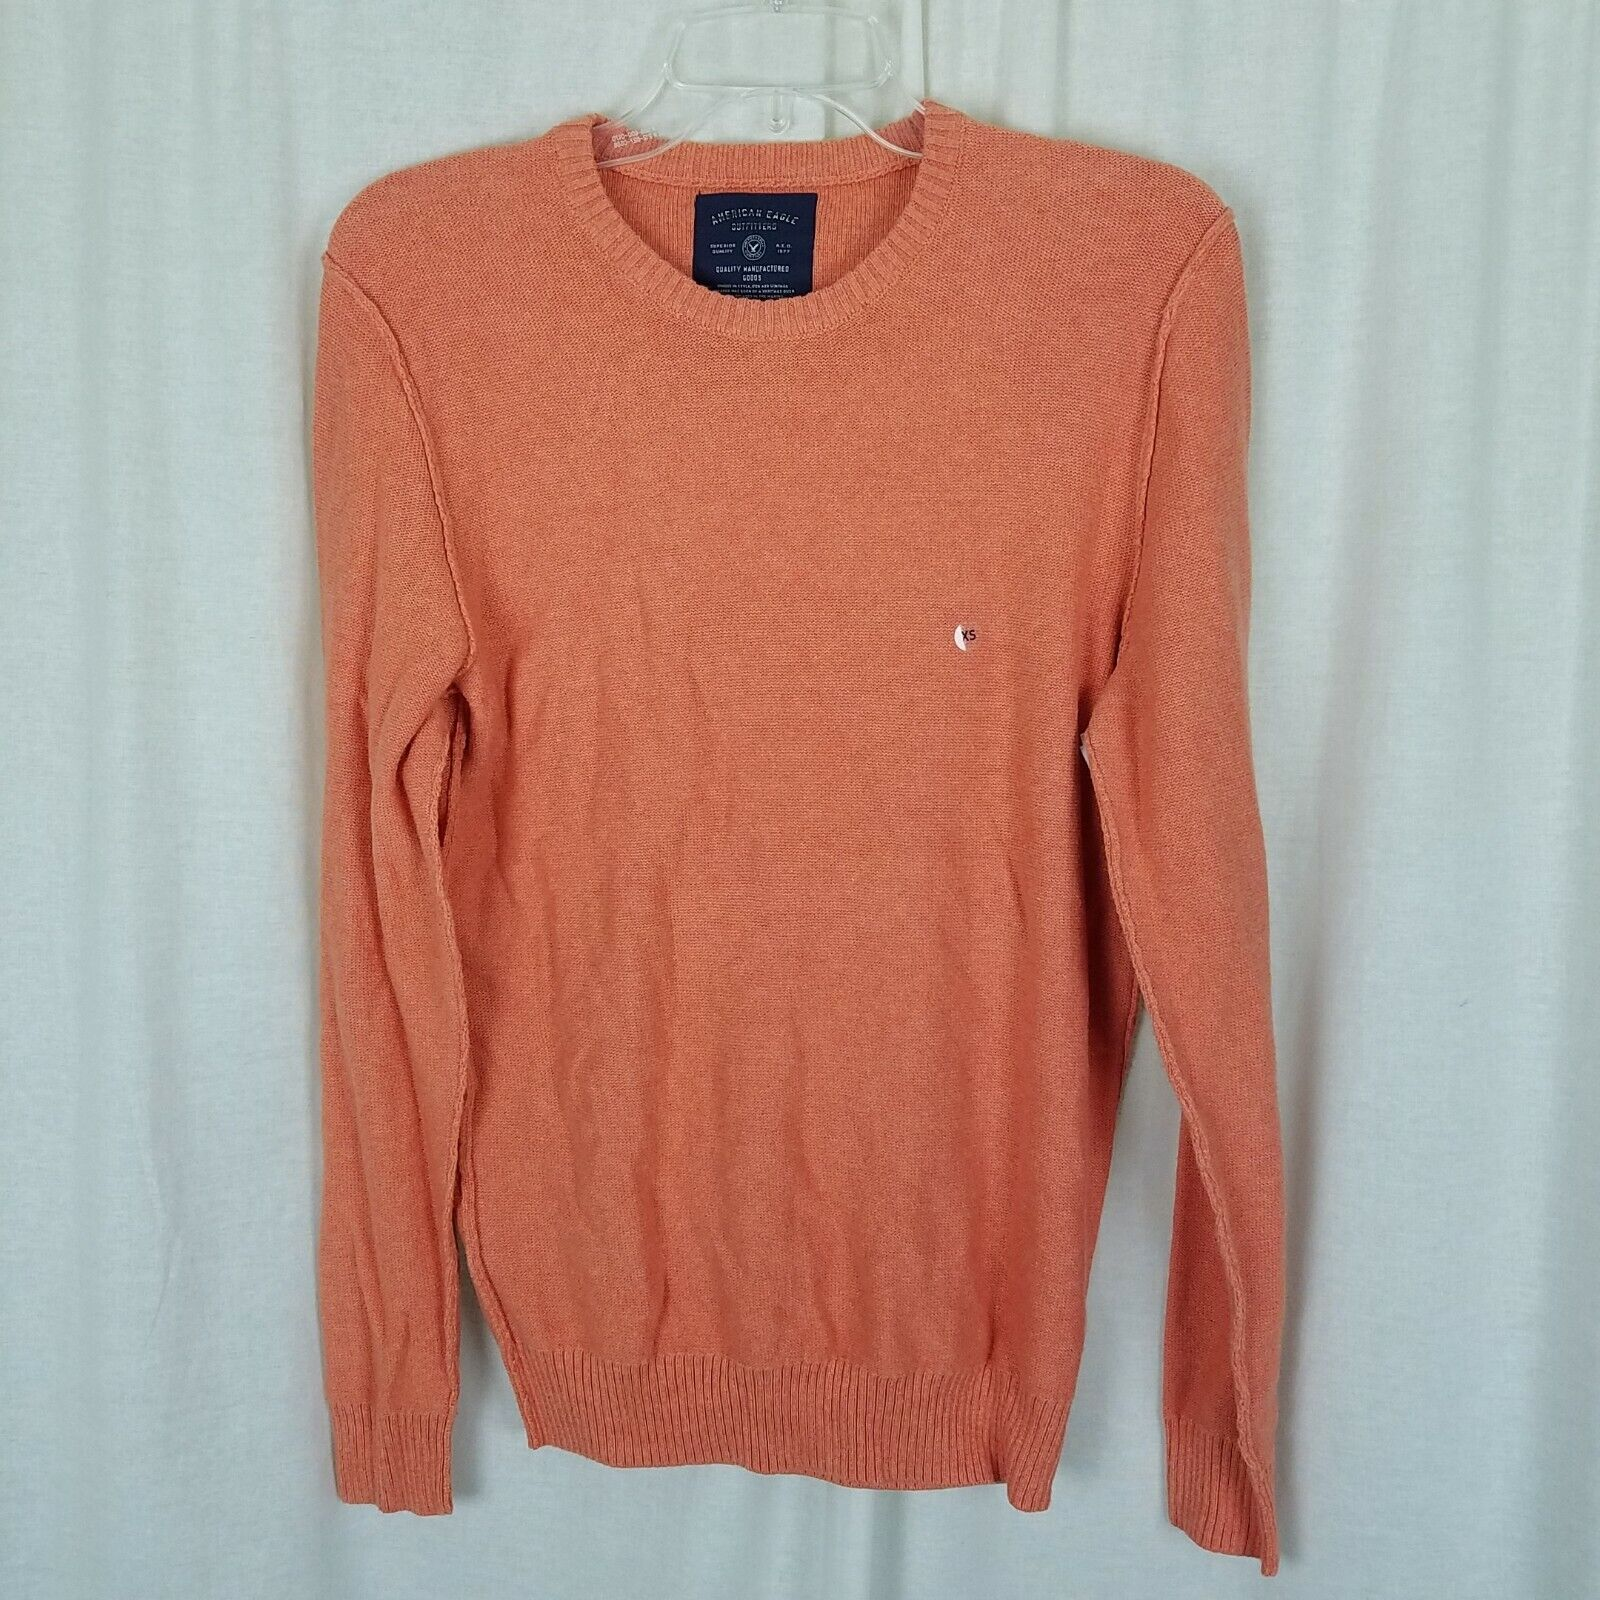 American Eagle 100% Cotton Orange Deconstructed Inside Out Knit Sweater Mens XS